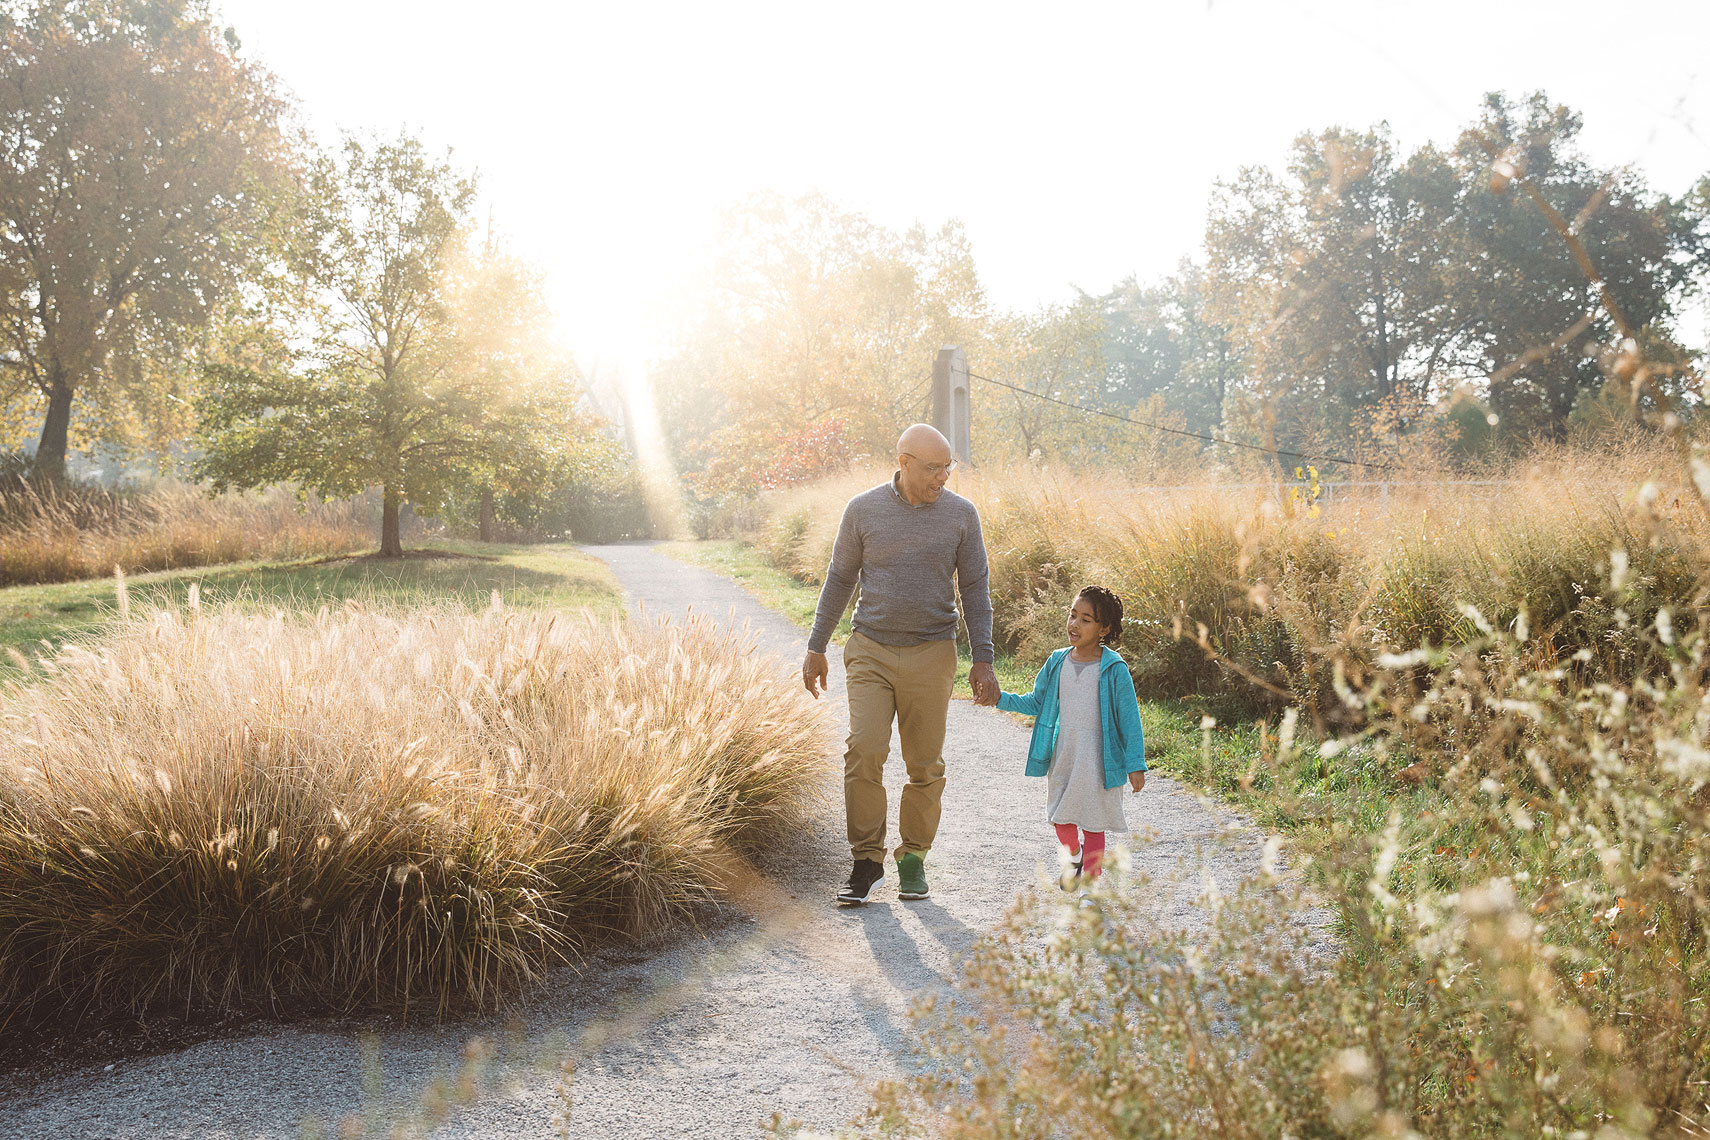 Grandfather walking with granddaughter in park |  Centene | John Fedele Lifestyle Photography